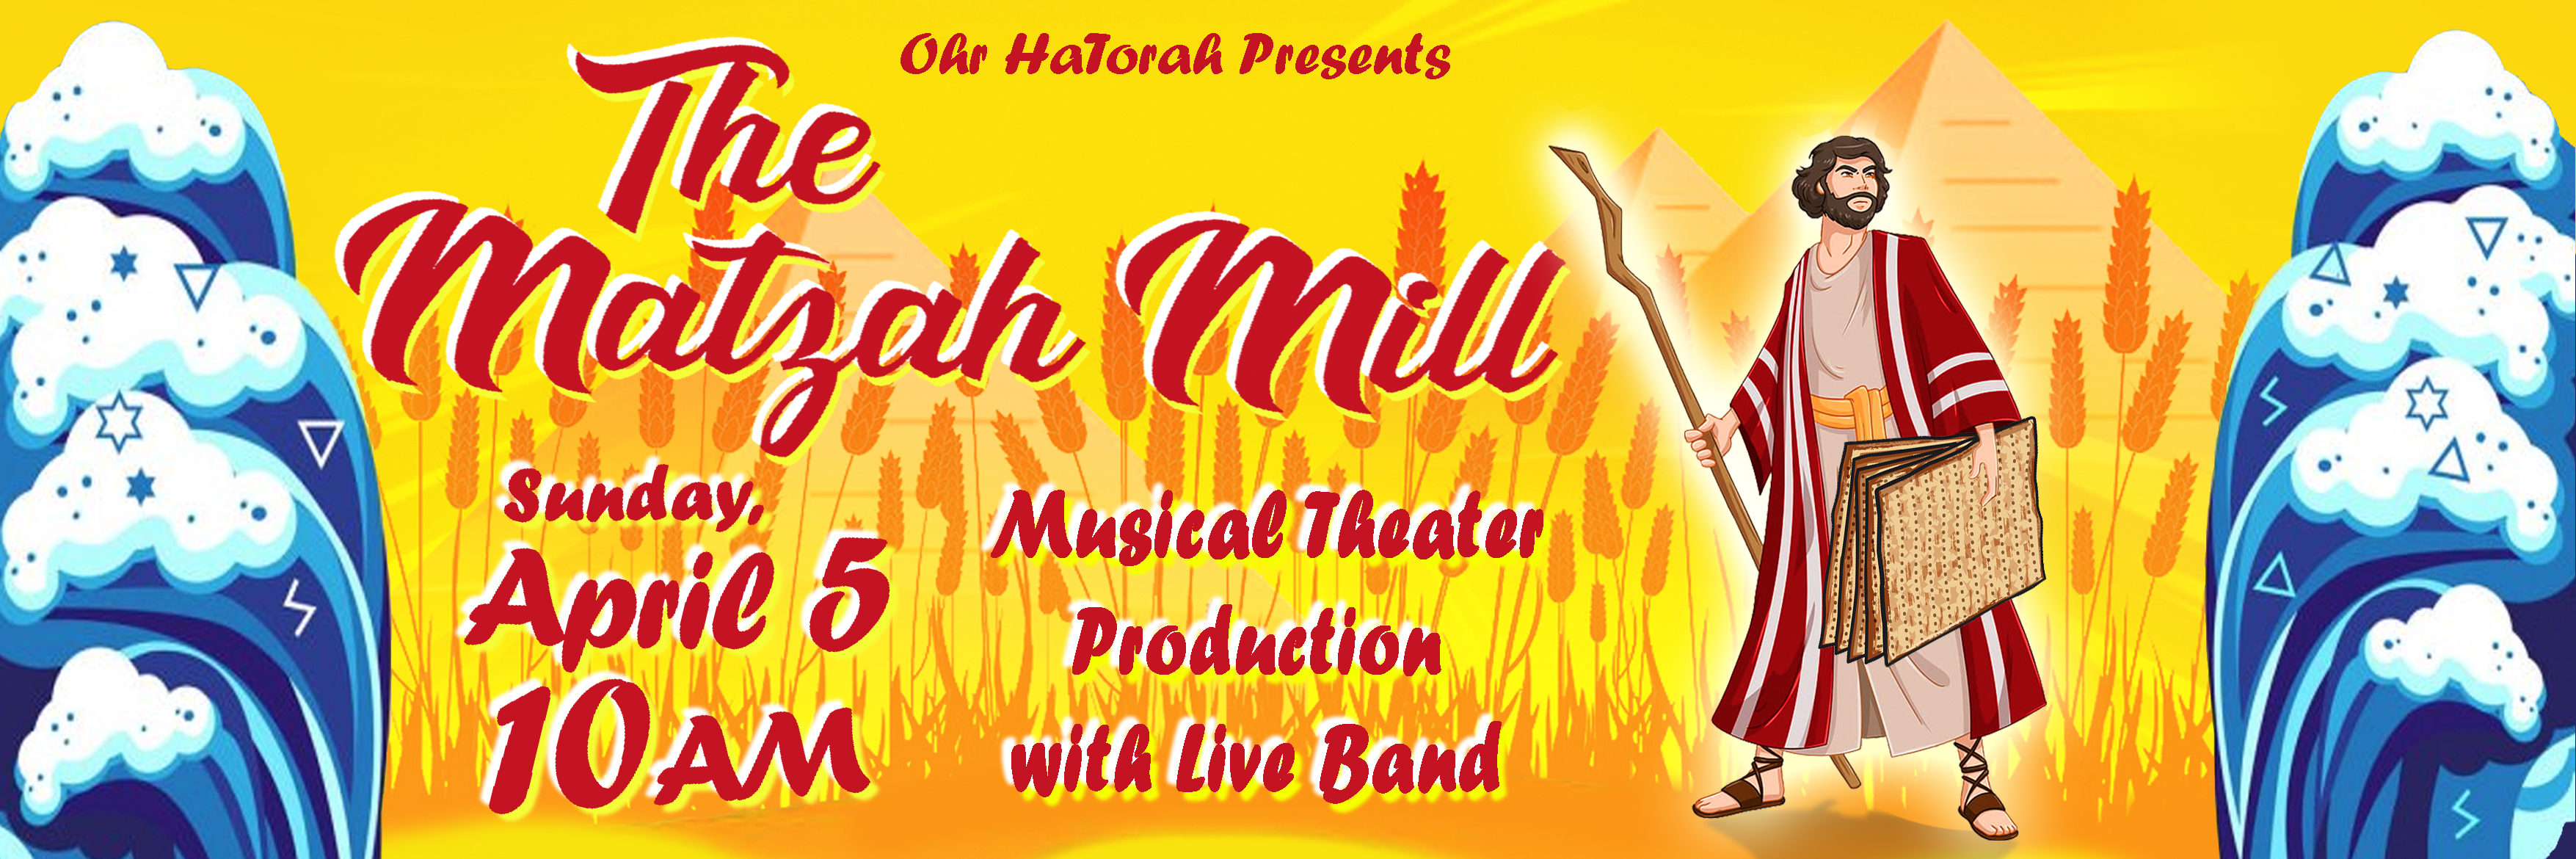 Banner Image for The Matzah Mill